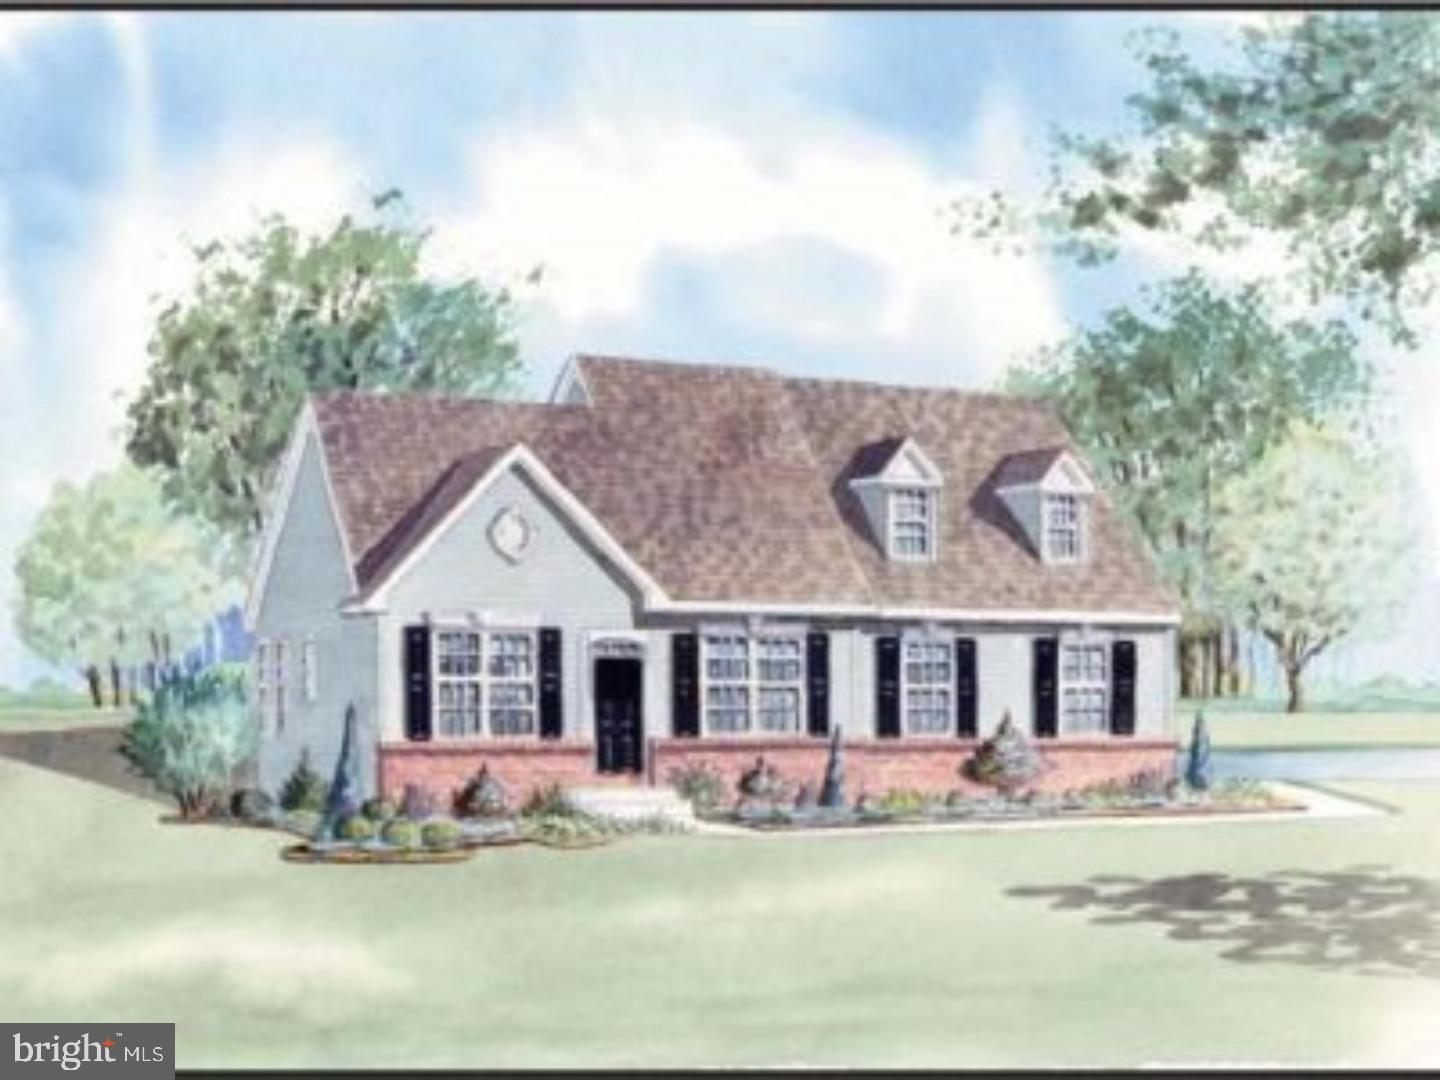 Chesapeake Model- to be built. The Chesapeake model offers first floor living with the option to add space on second floor.  Optional sunroom available.  All home sites are a half acre with public water and sewer. The large kitchen consists of a center breakfast bar and separate dining area. The formal dining room can easily convert to an extra bedroom. With all of the standard features of side entry garages, stone water table, granite counter tops and stainless steel appliances, there is no need to look any further.